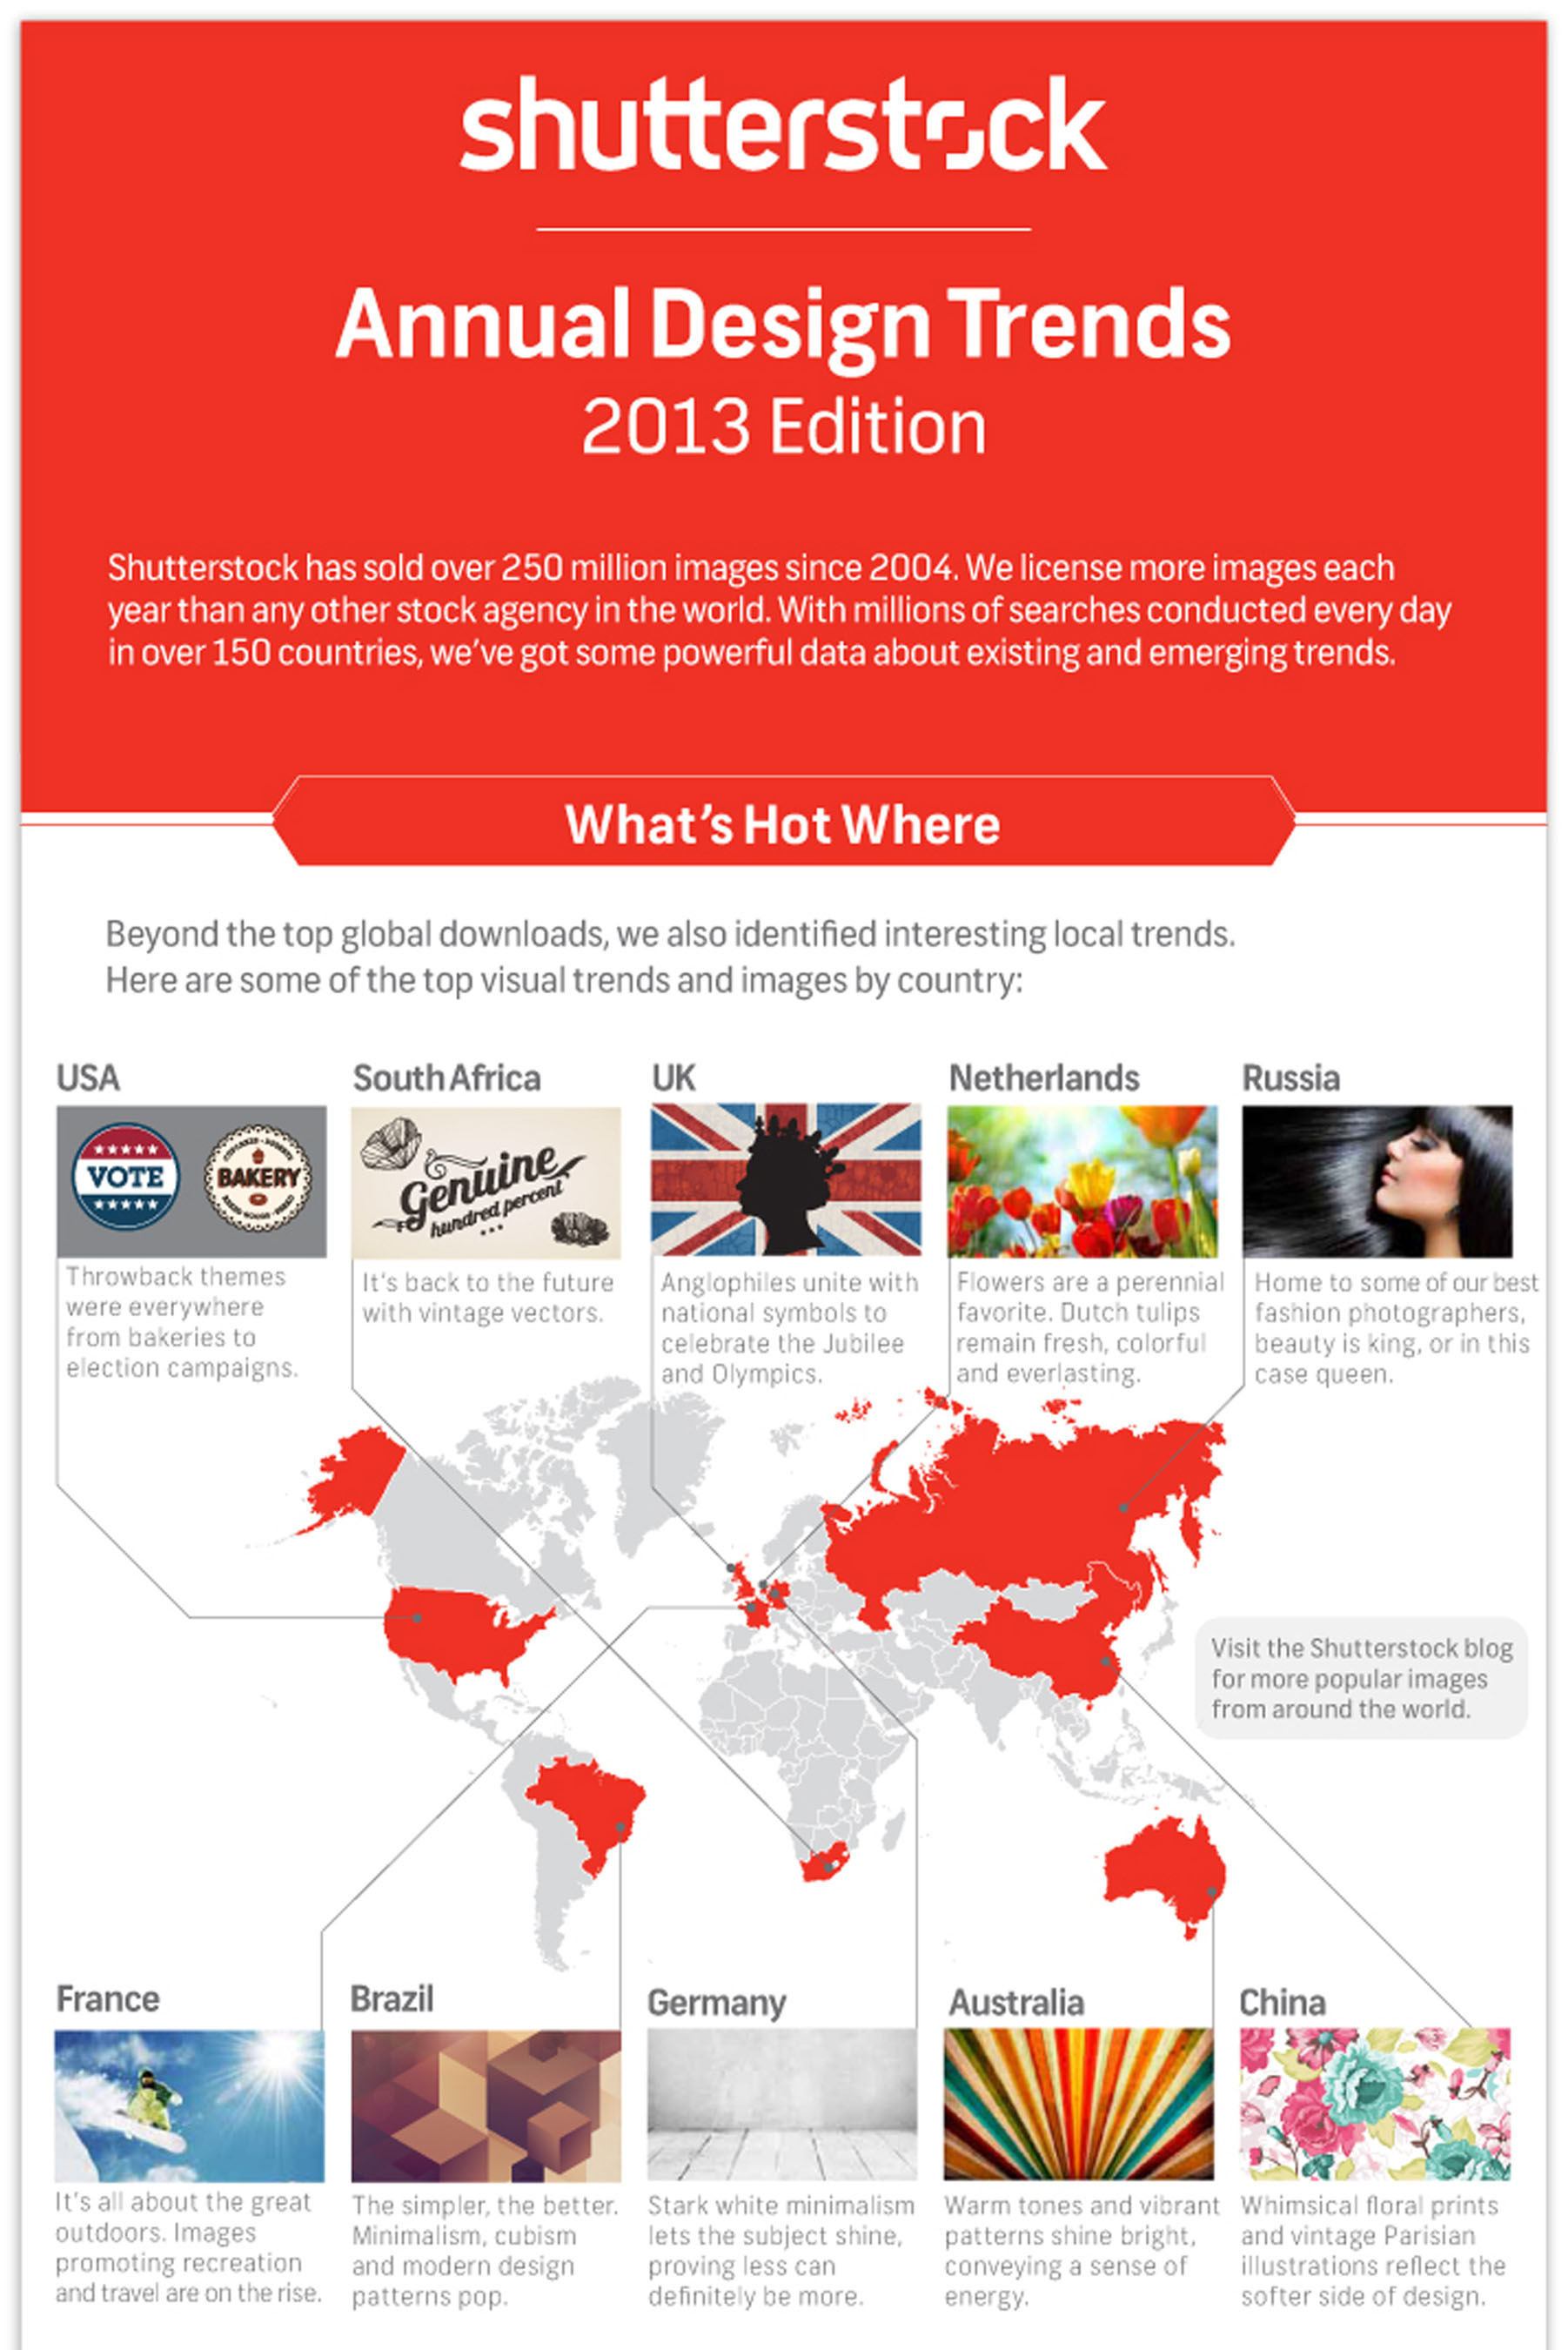 Shutterstock Releases Global Design Trends Infographic. See the full infographic here: http://ow.ly/hGeav. ...